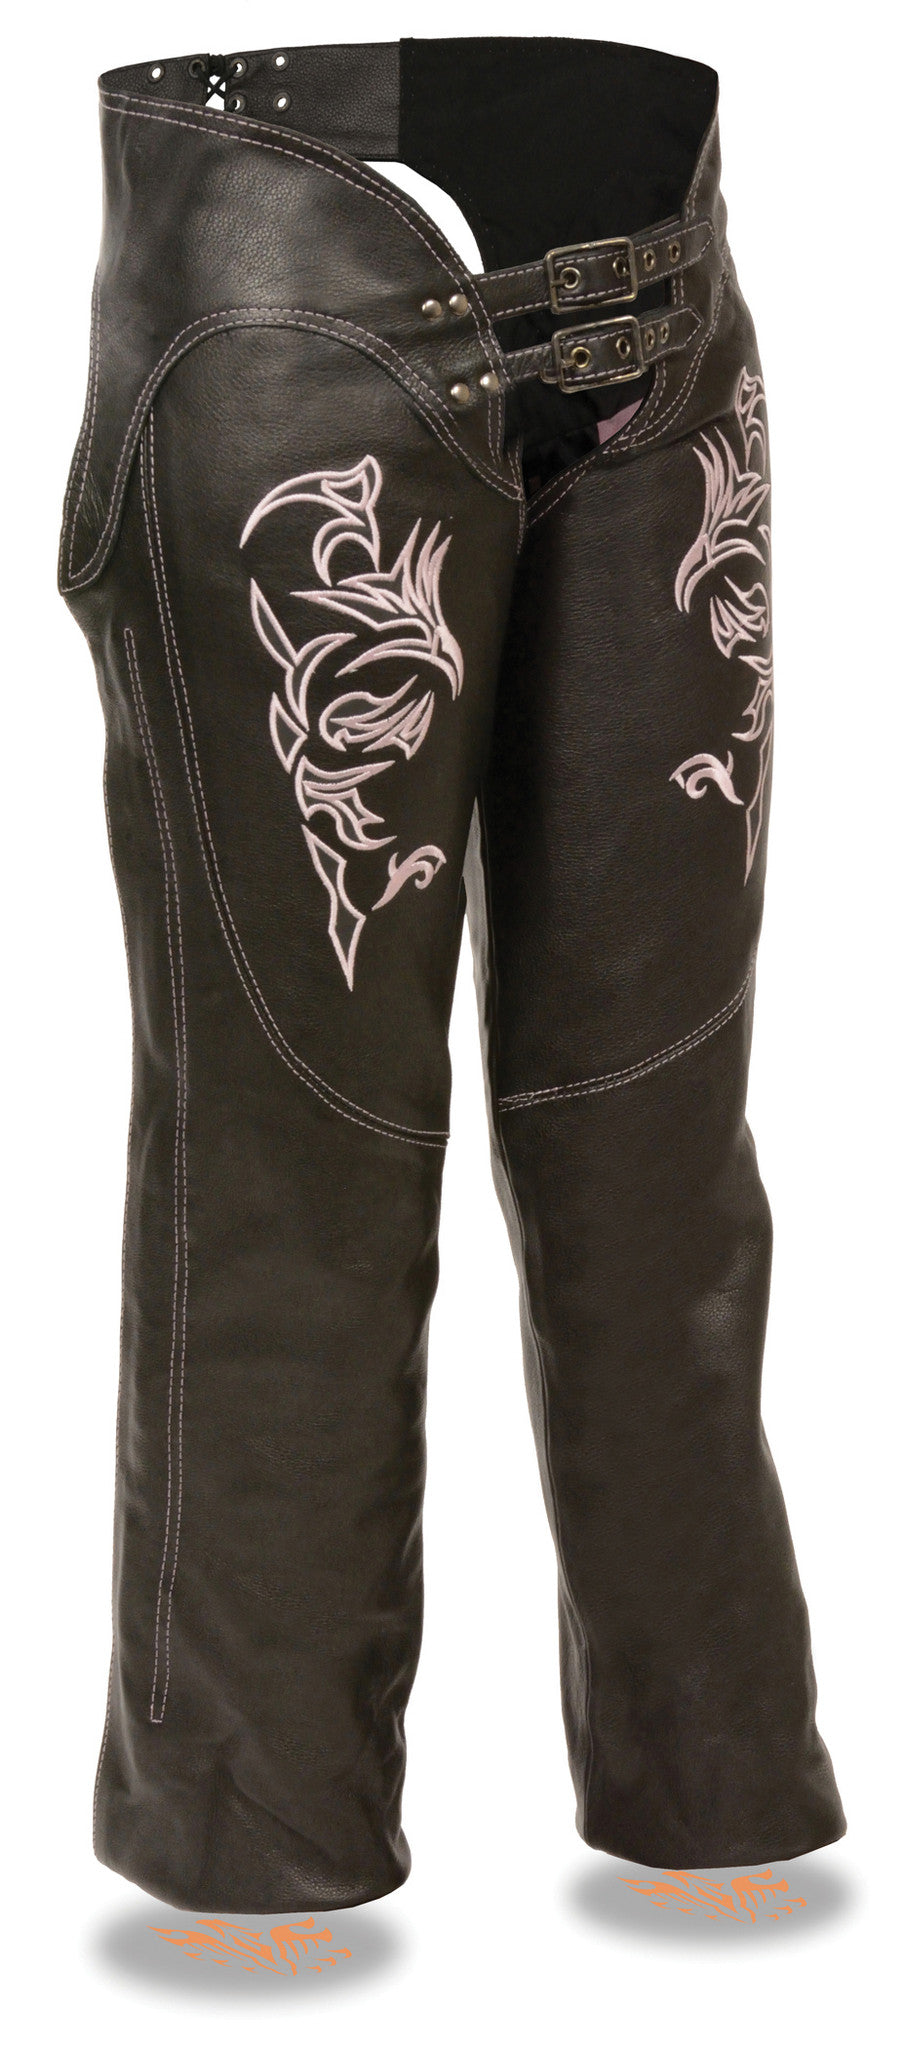 WOMEN'S MOTORCYCLE LEATHER CHAP W PINK EMBROIDERY REFLECTIVE